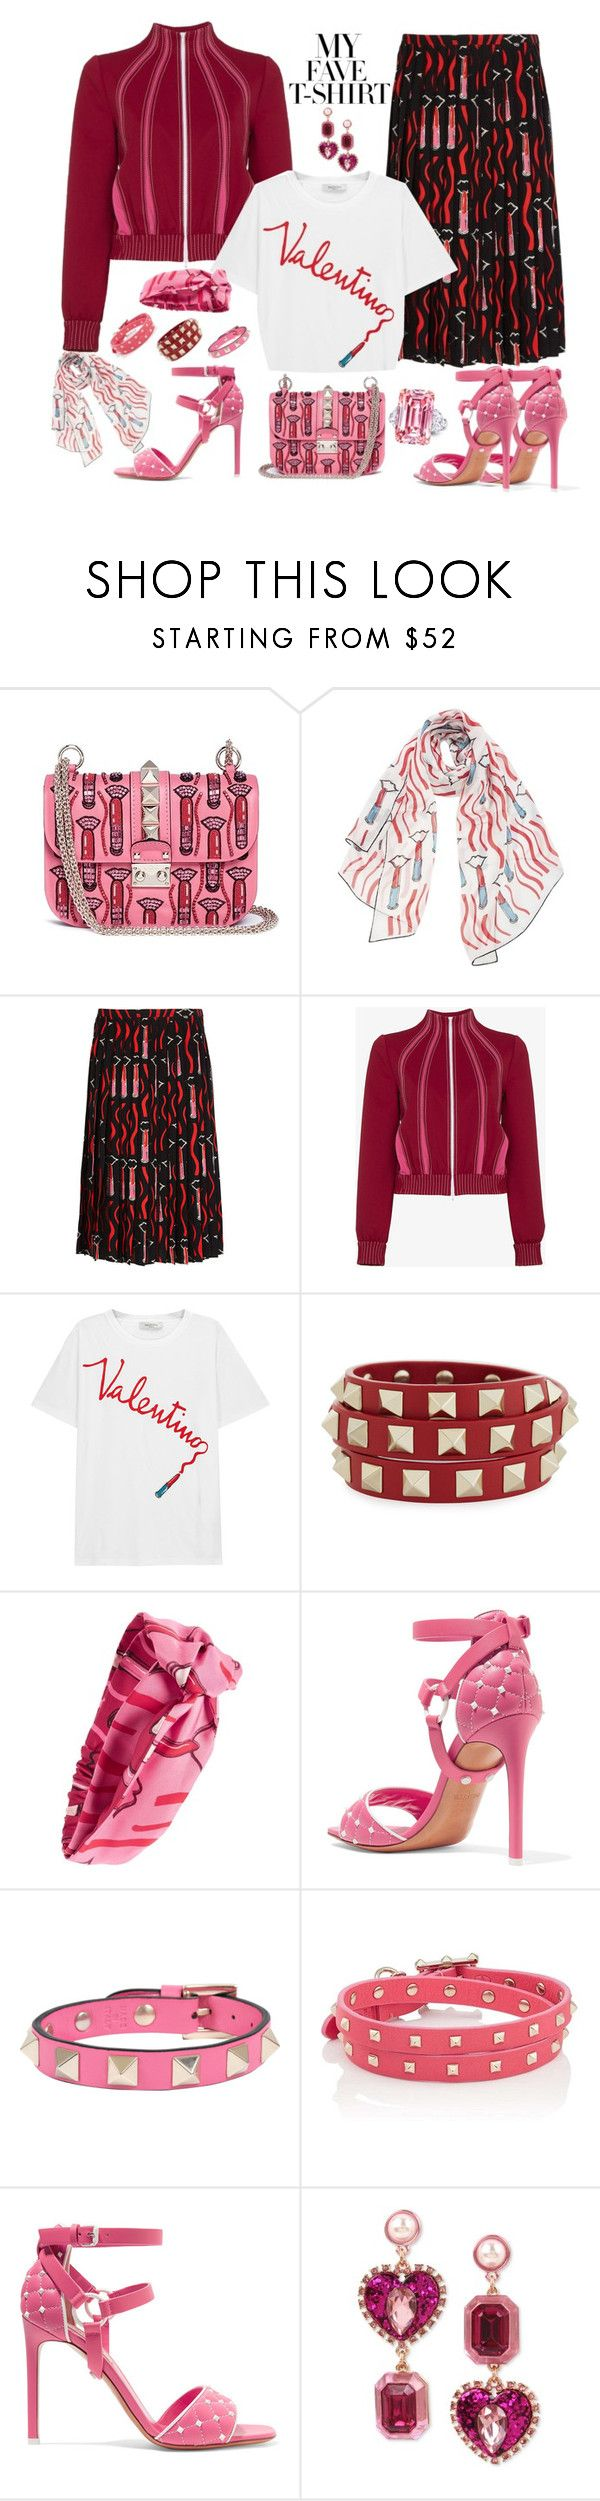 """""""Valentino Dressing up my T-shirt"""" by ellenfischerbeauty ❤ liked on Polyvore featuring Valentino and Betsey Johnson"""